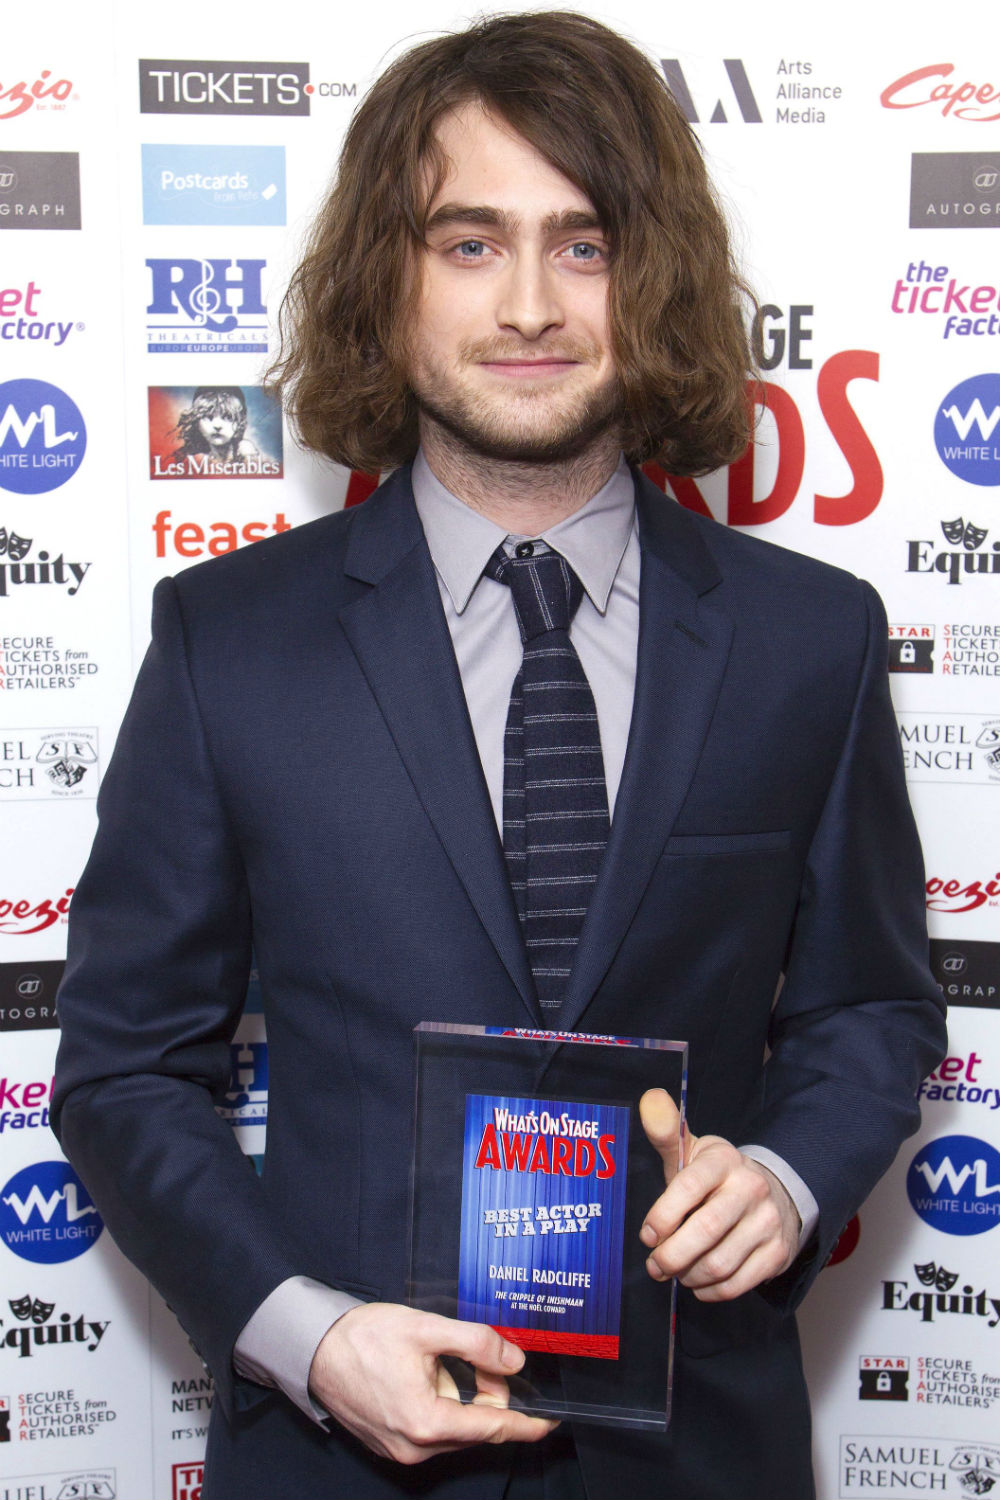 Daniel Radcliffes Long Hair Taught Him Something About Women